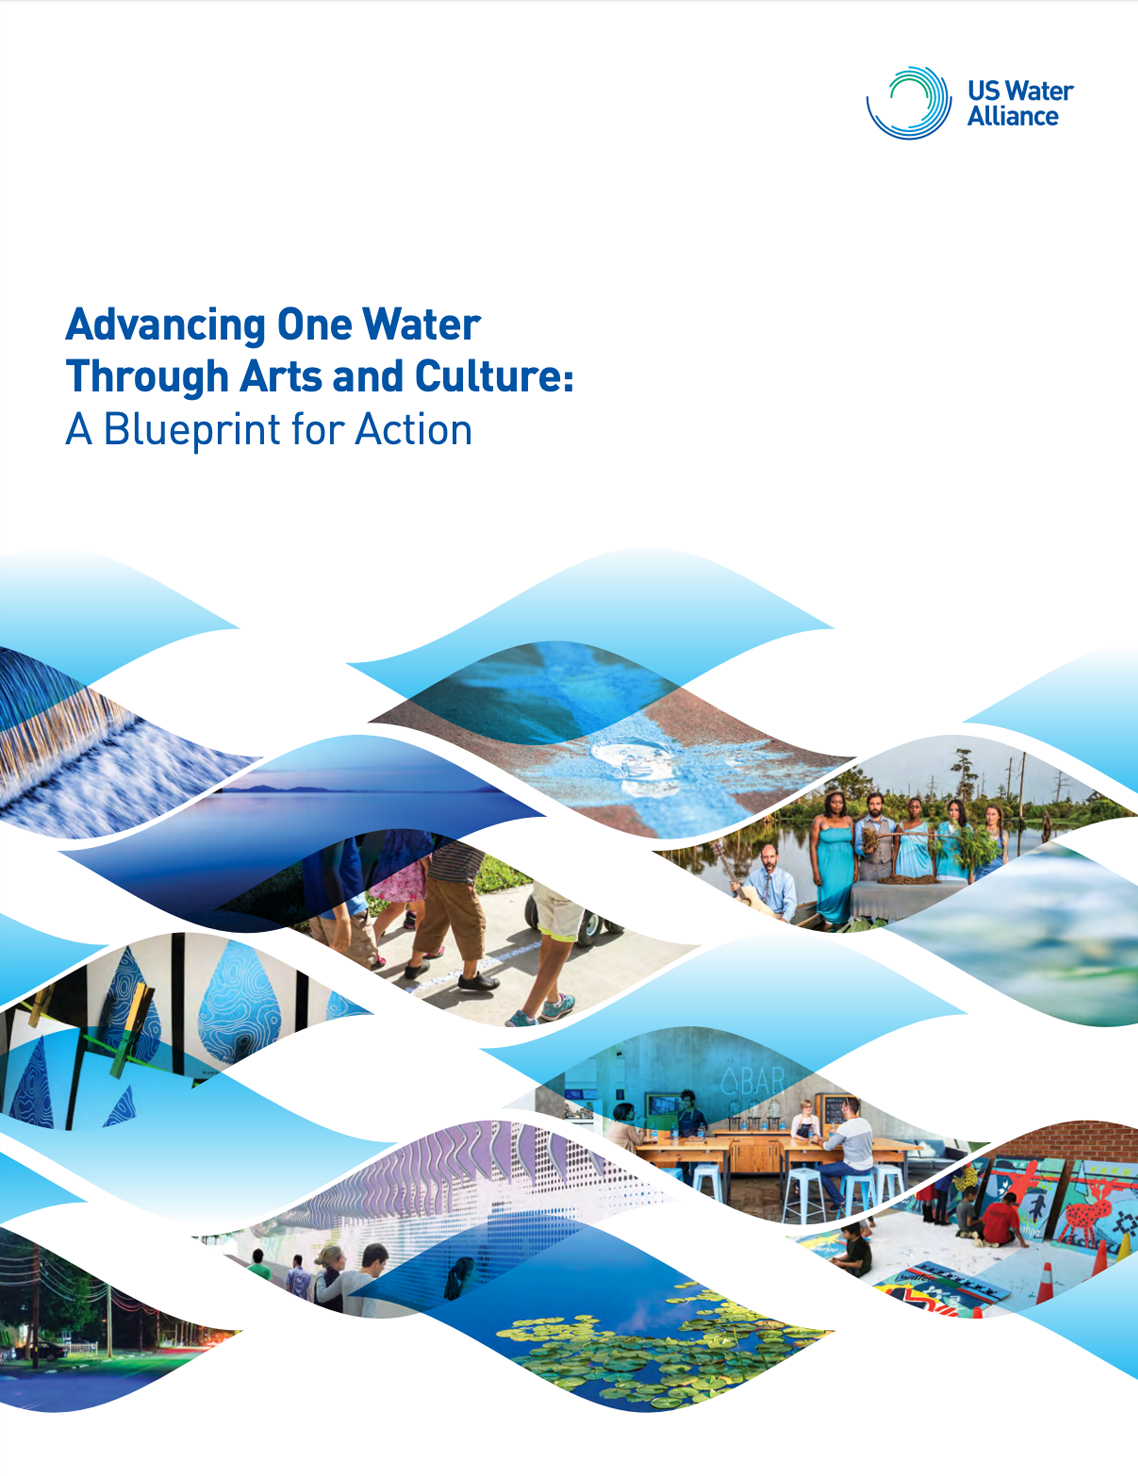 Advancing One Water Through Arts and Culture.png